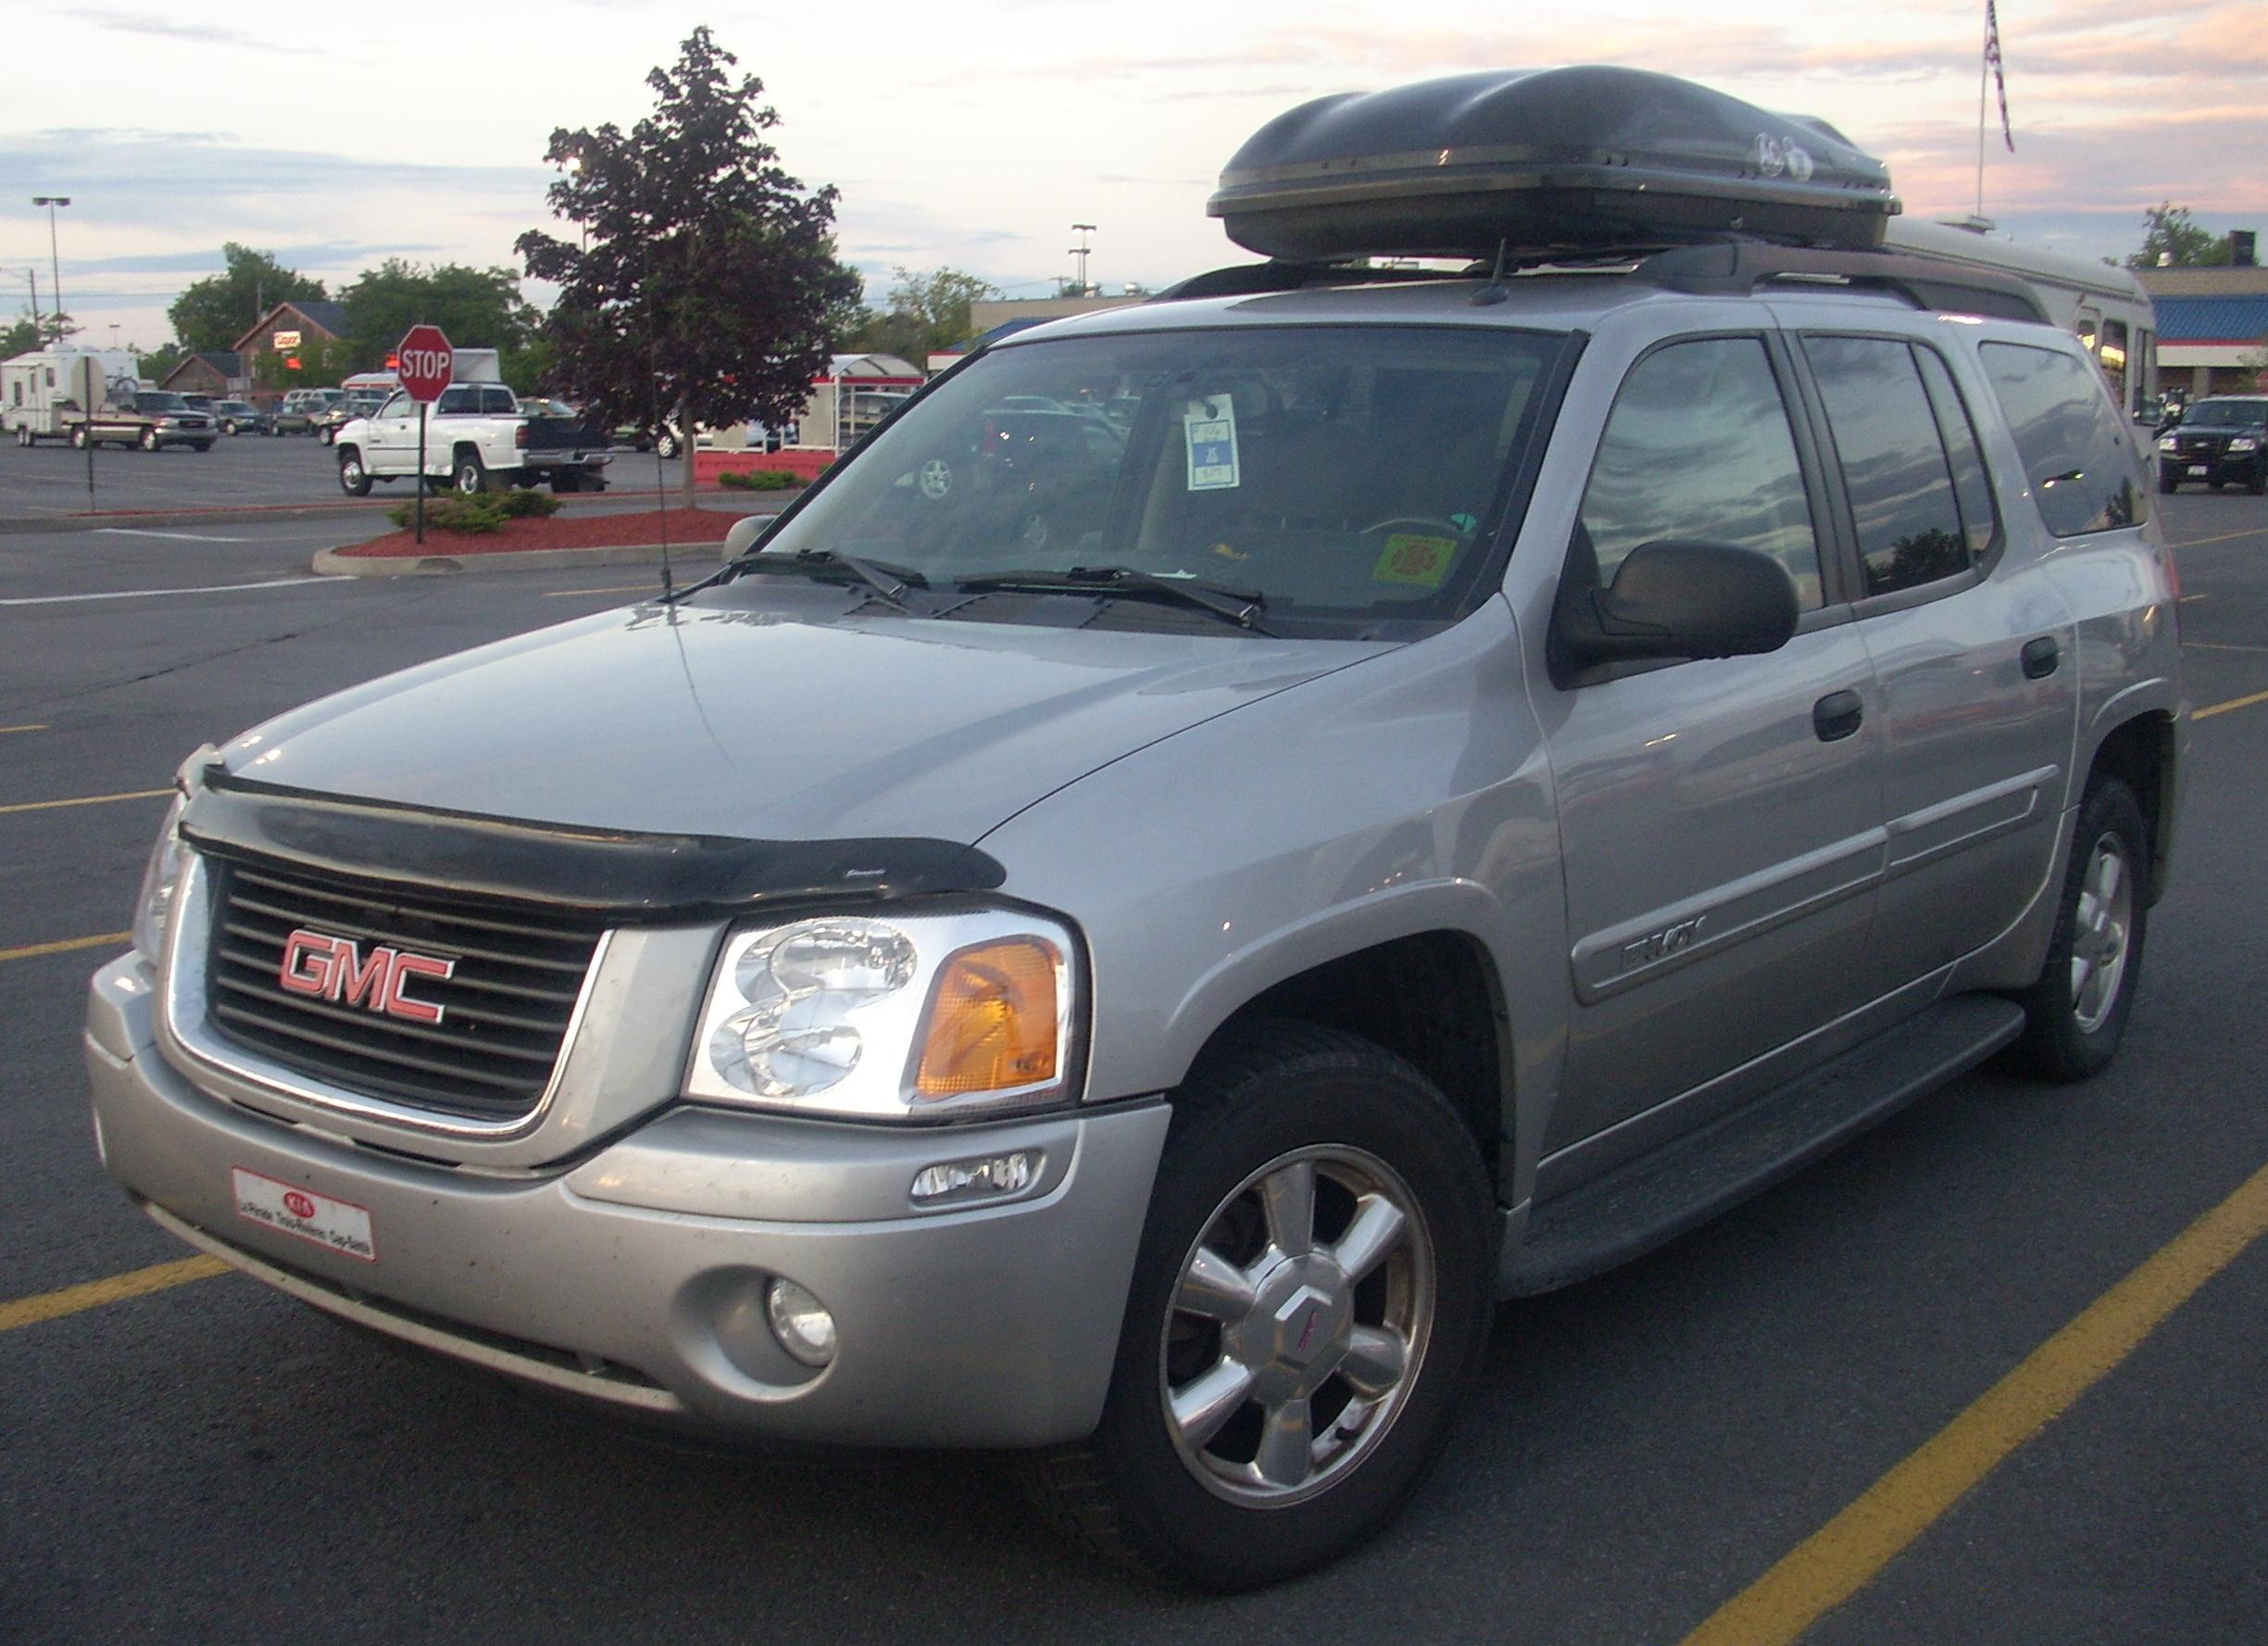 05 gmc envoy xl pictures to pin on pinterest pinsdaddy. Black Bedroom Furniture Sets. Home Design Ideas